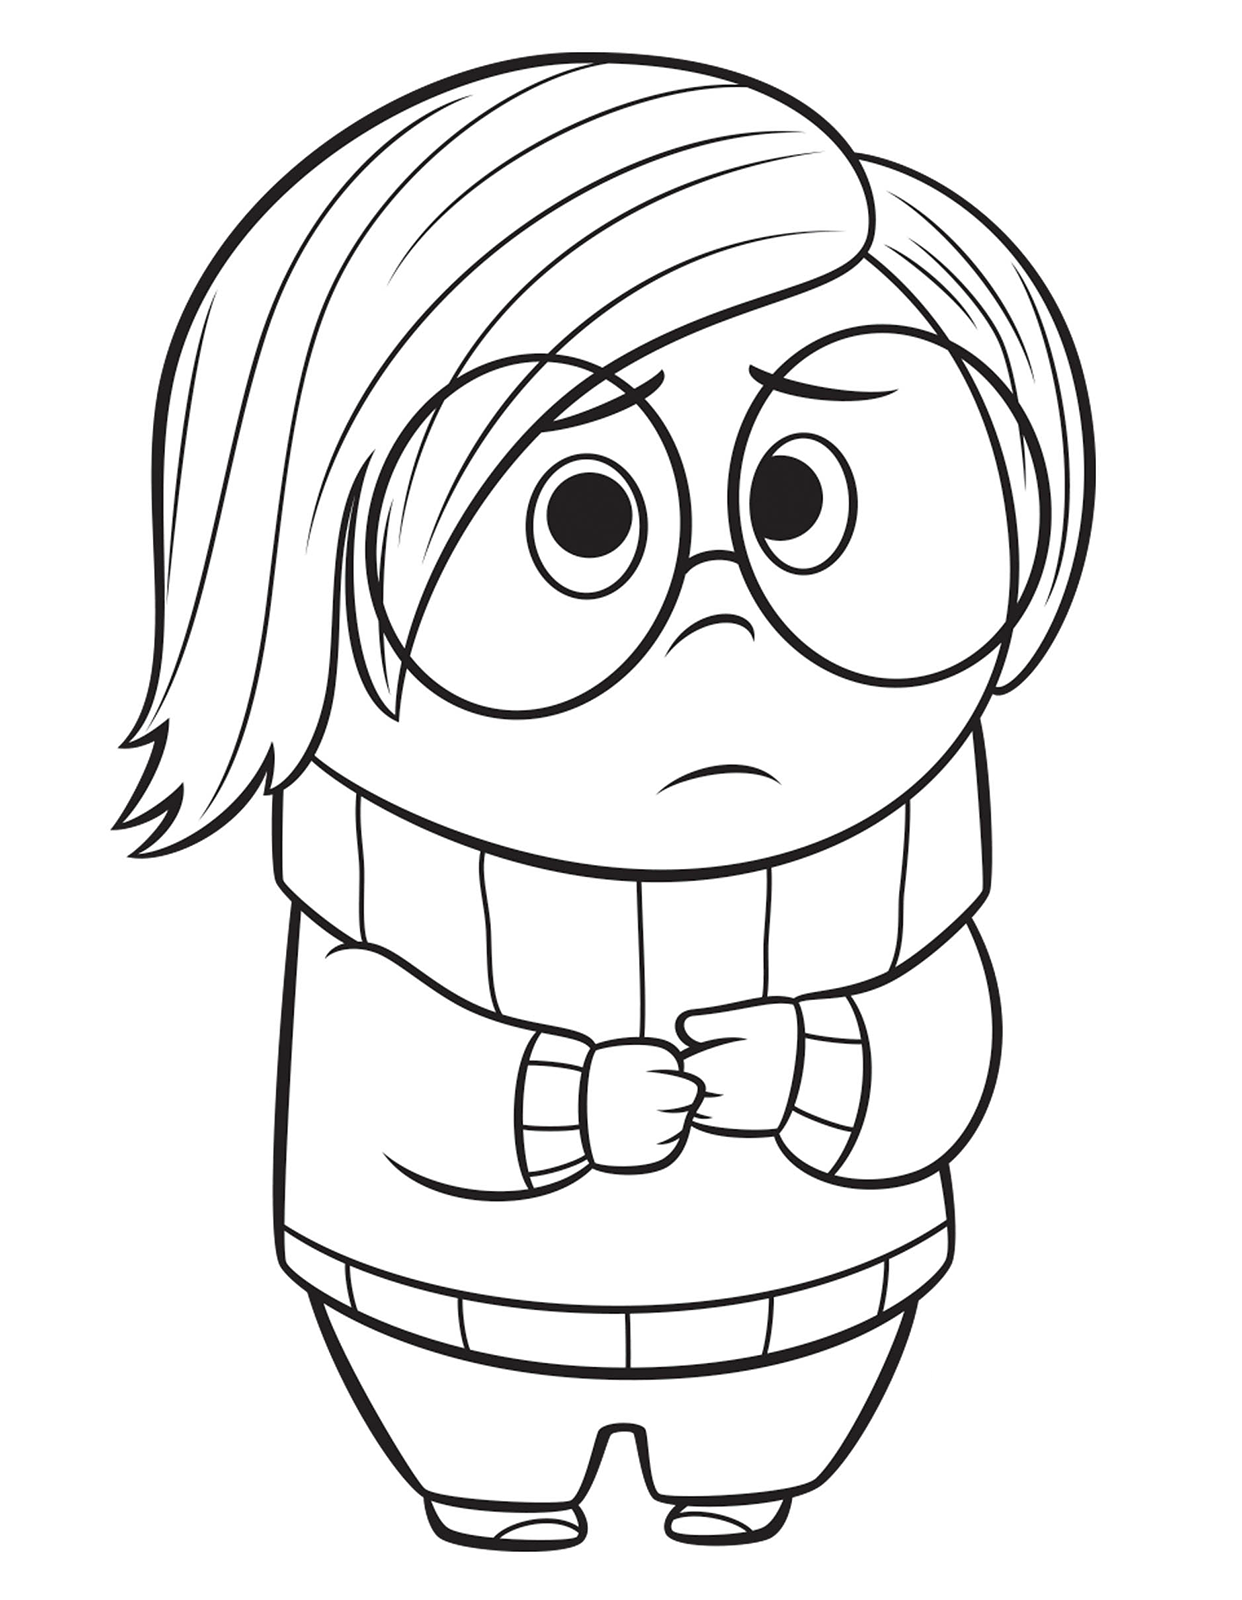 Sadness Coloring Pages Coloring Home